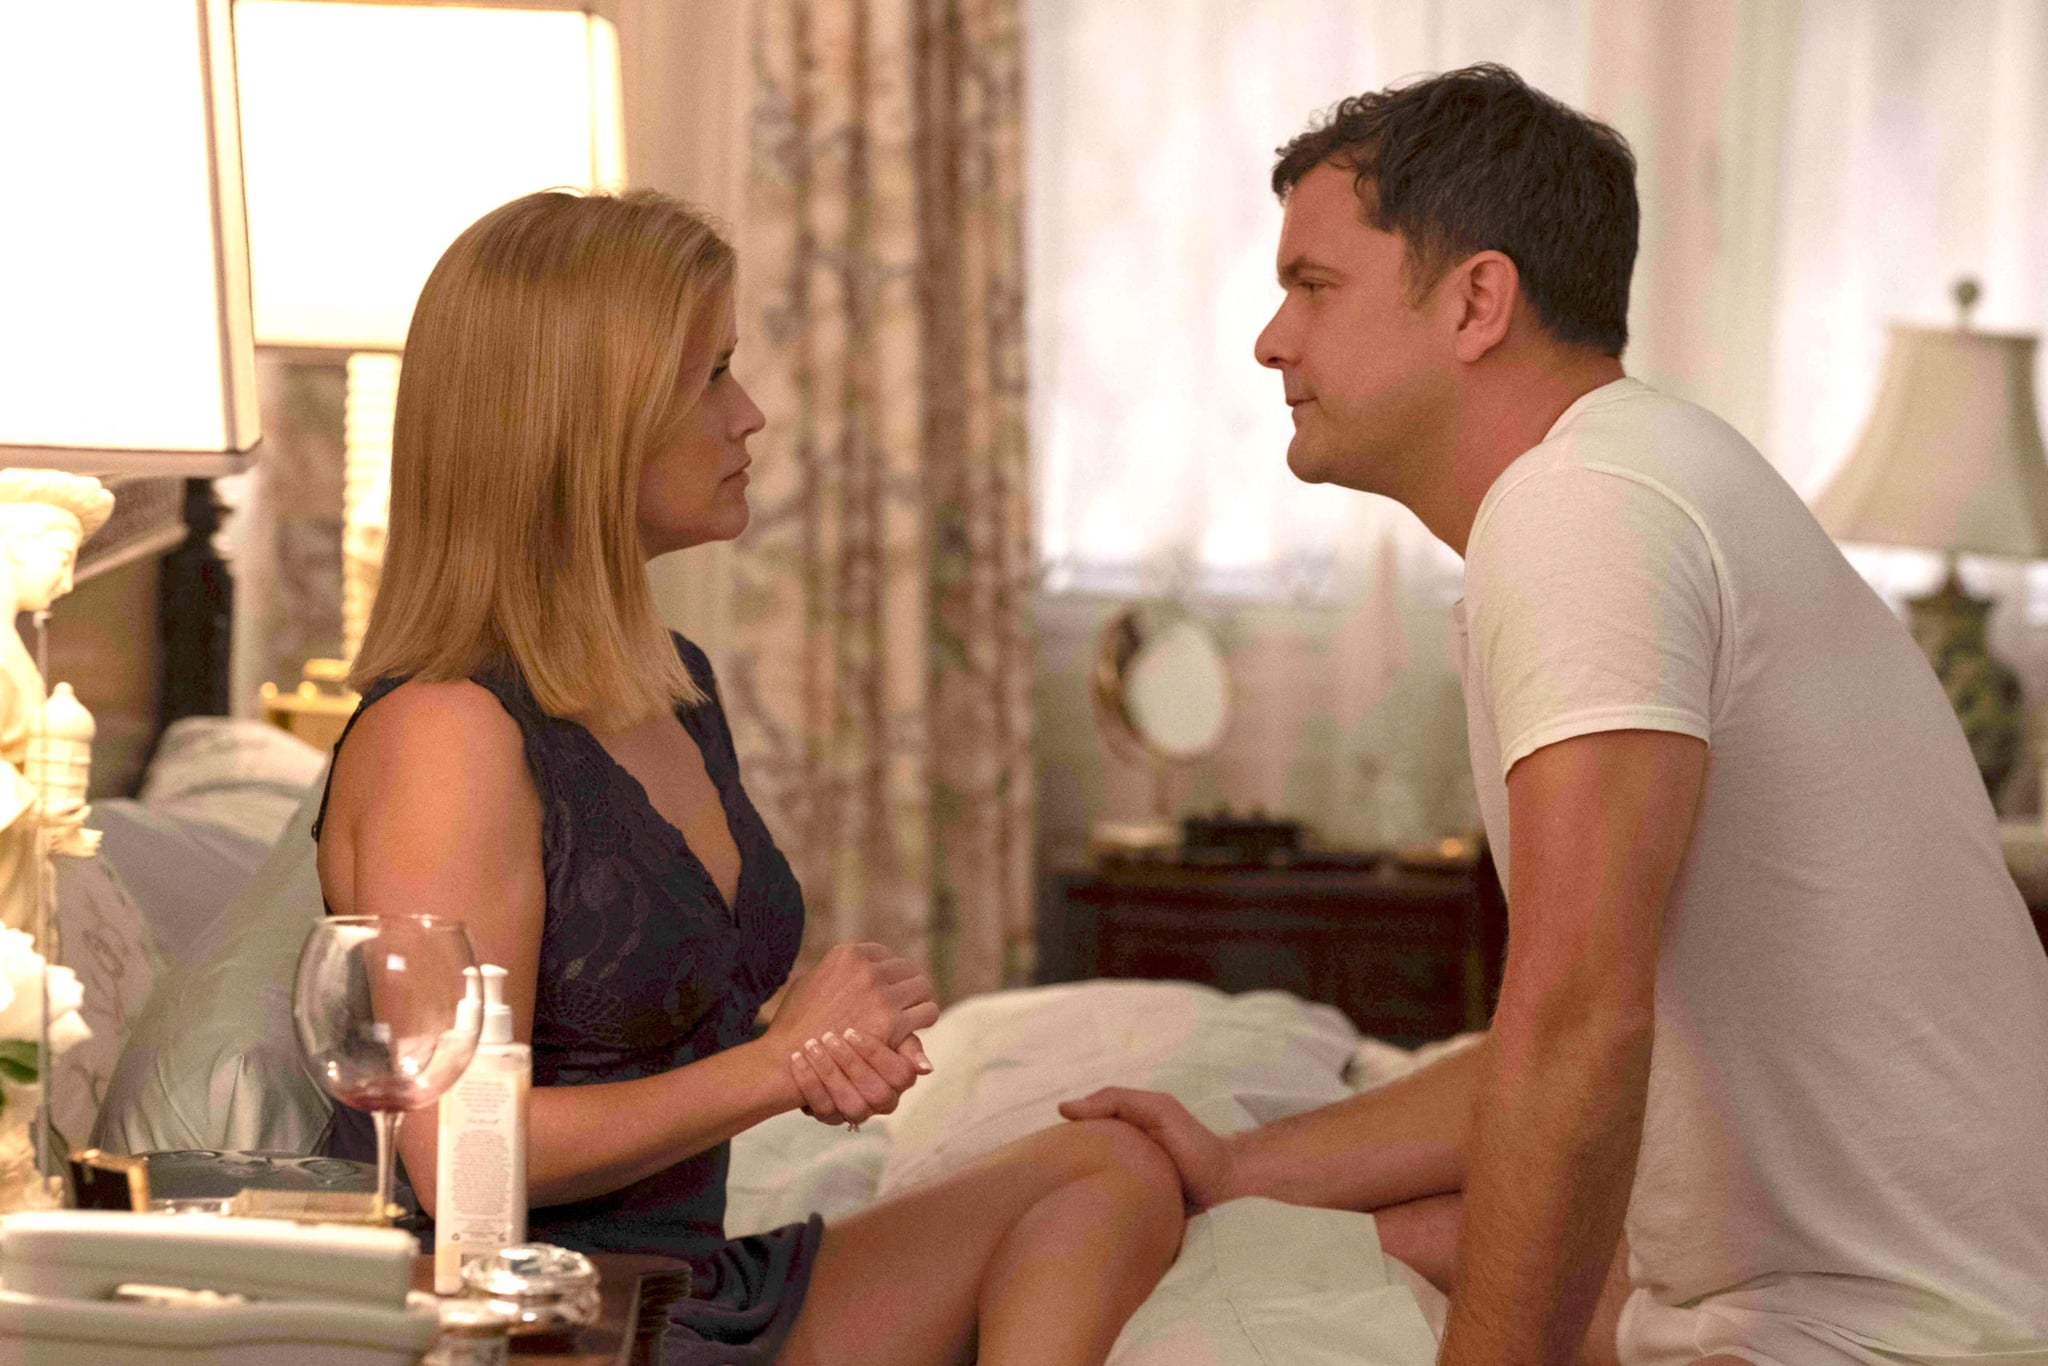 LITTLE FIRES EVERYWHERE, from left: Reese Witherspoon, Joshua Jackson, The Spark, (Season 1, ep. 101, aired Mar. 18, 2020). photo: Erin Simkin / Hulu / Courtesy Everett Collection